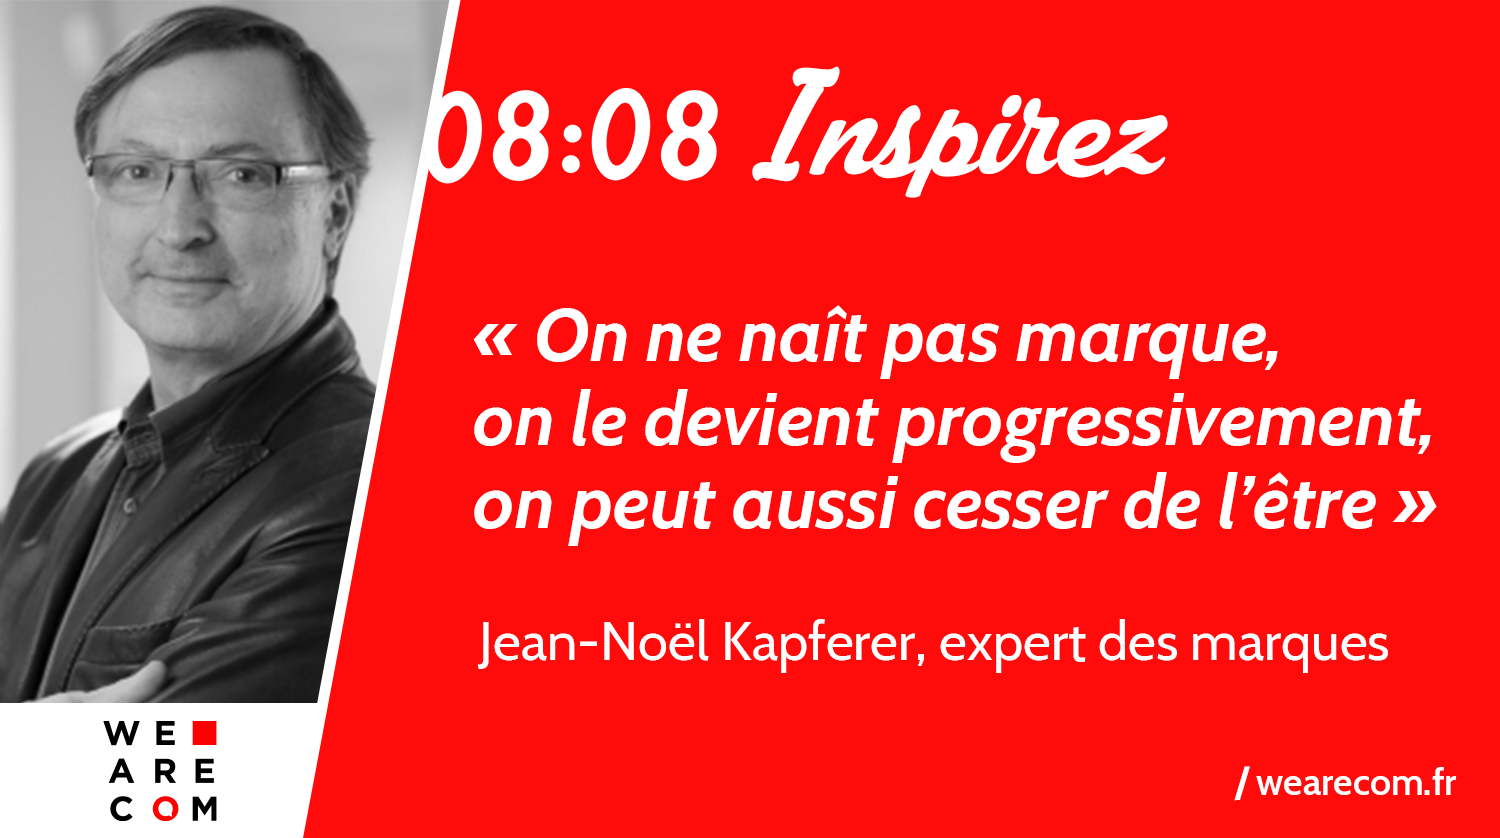 Citation_Kapferer_Marque_WeAreCOM_citation_communication